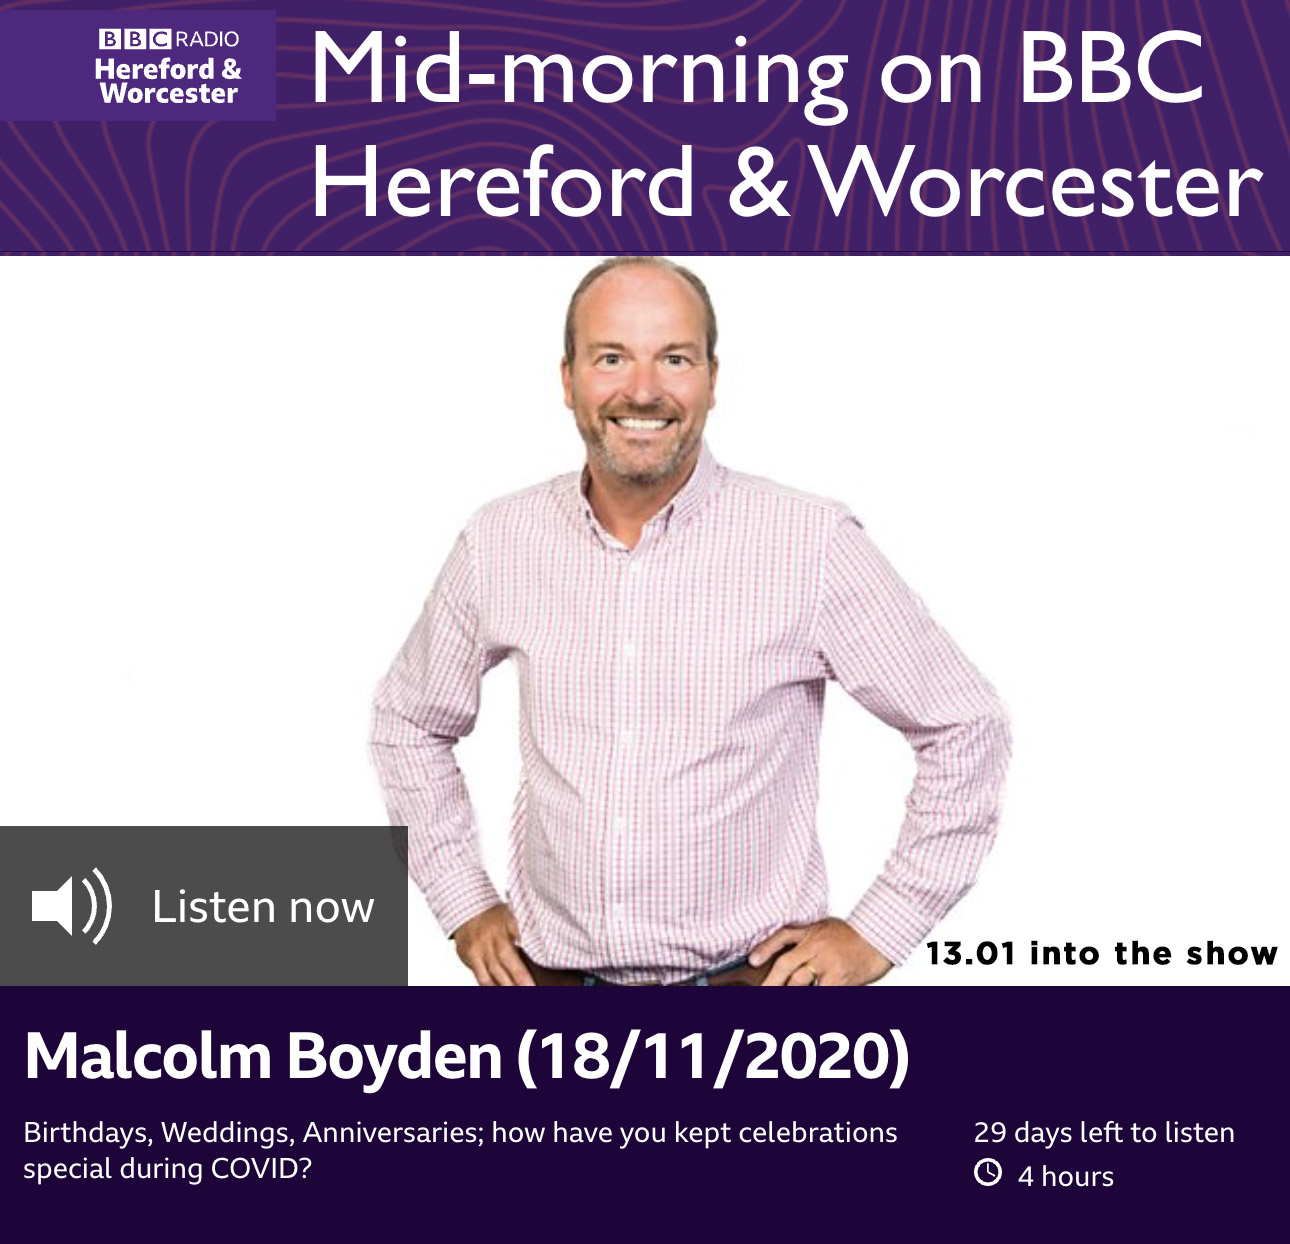 Liz Taylor inspires one family's lockdown anniversary celebration BBC Hereford & Worcester Malcolm Boyden 18.11.2020